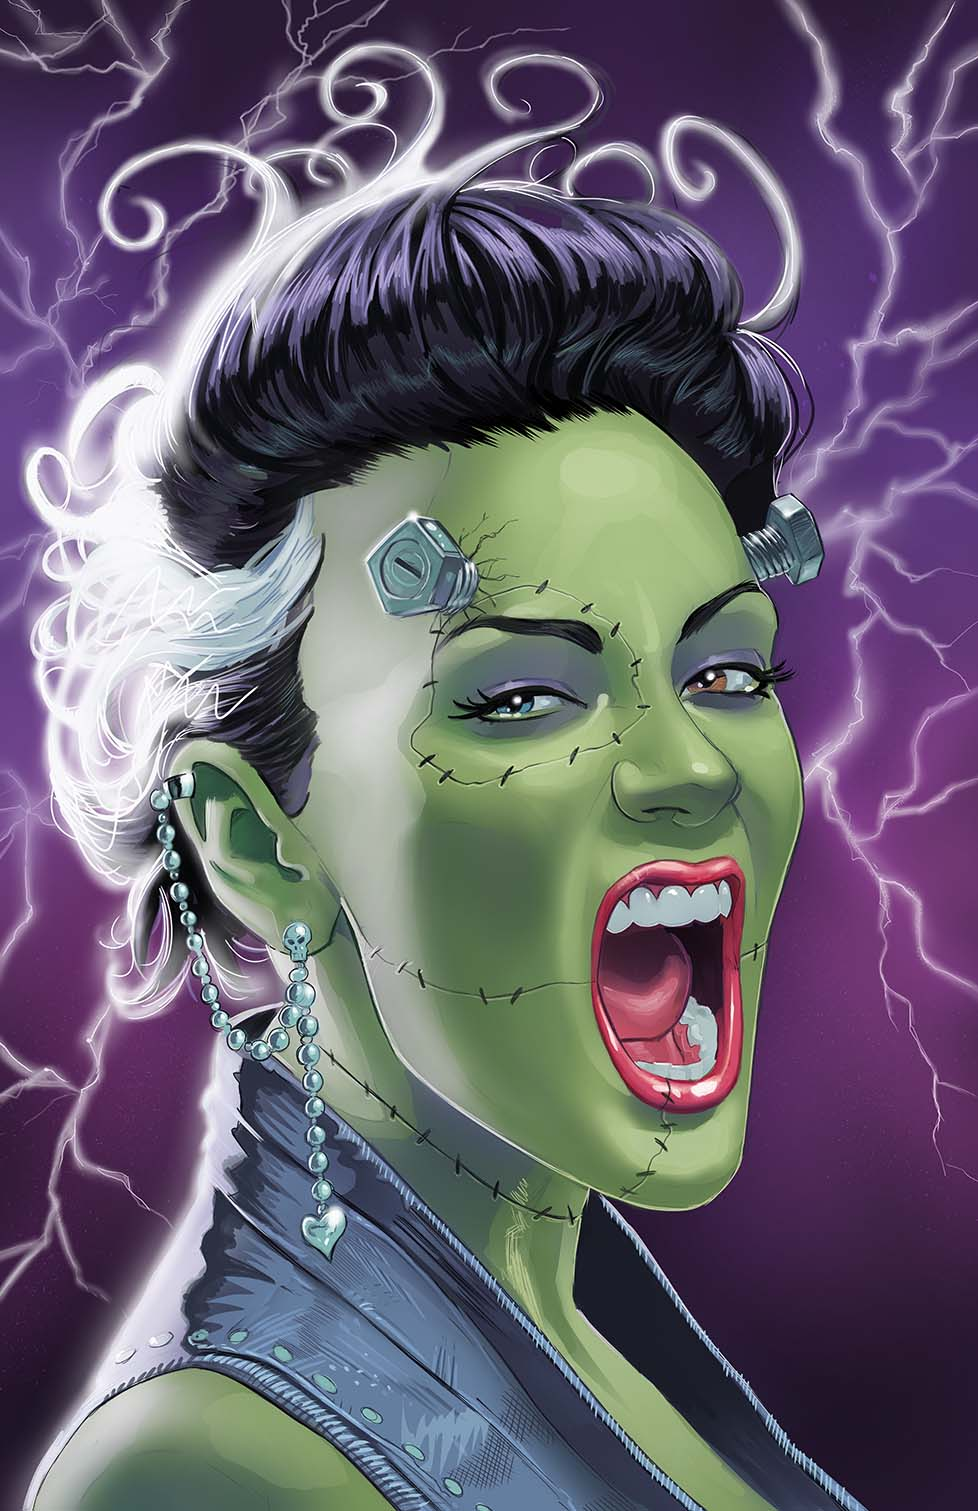 80s Bride of Frankenstein